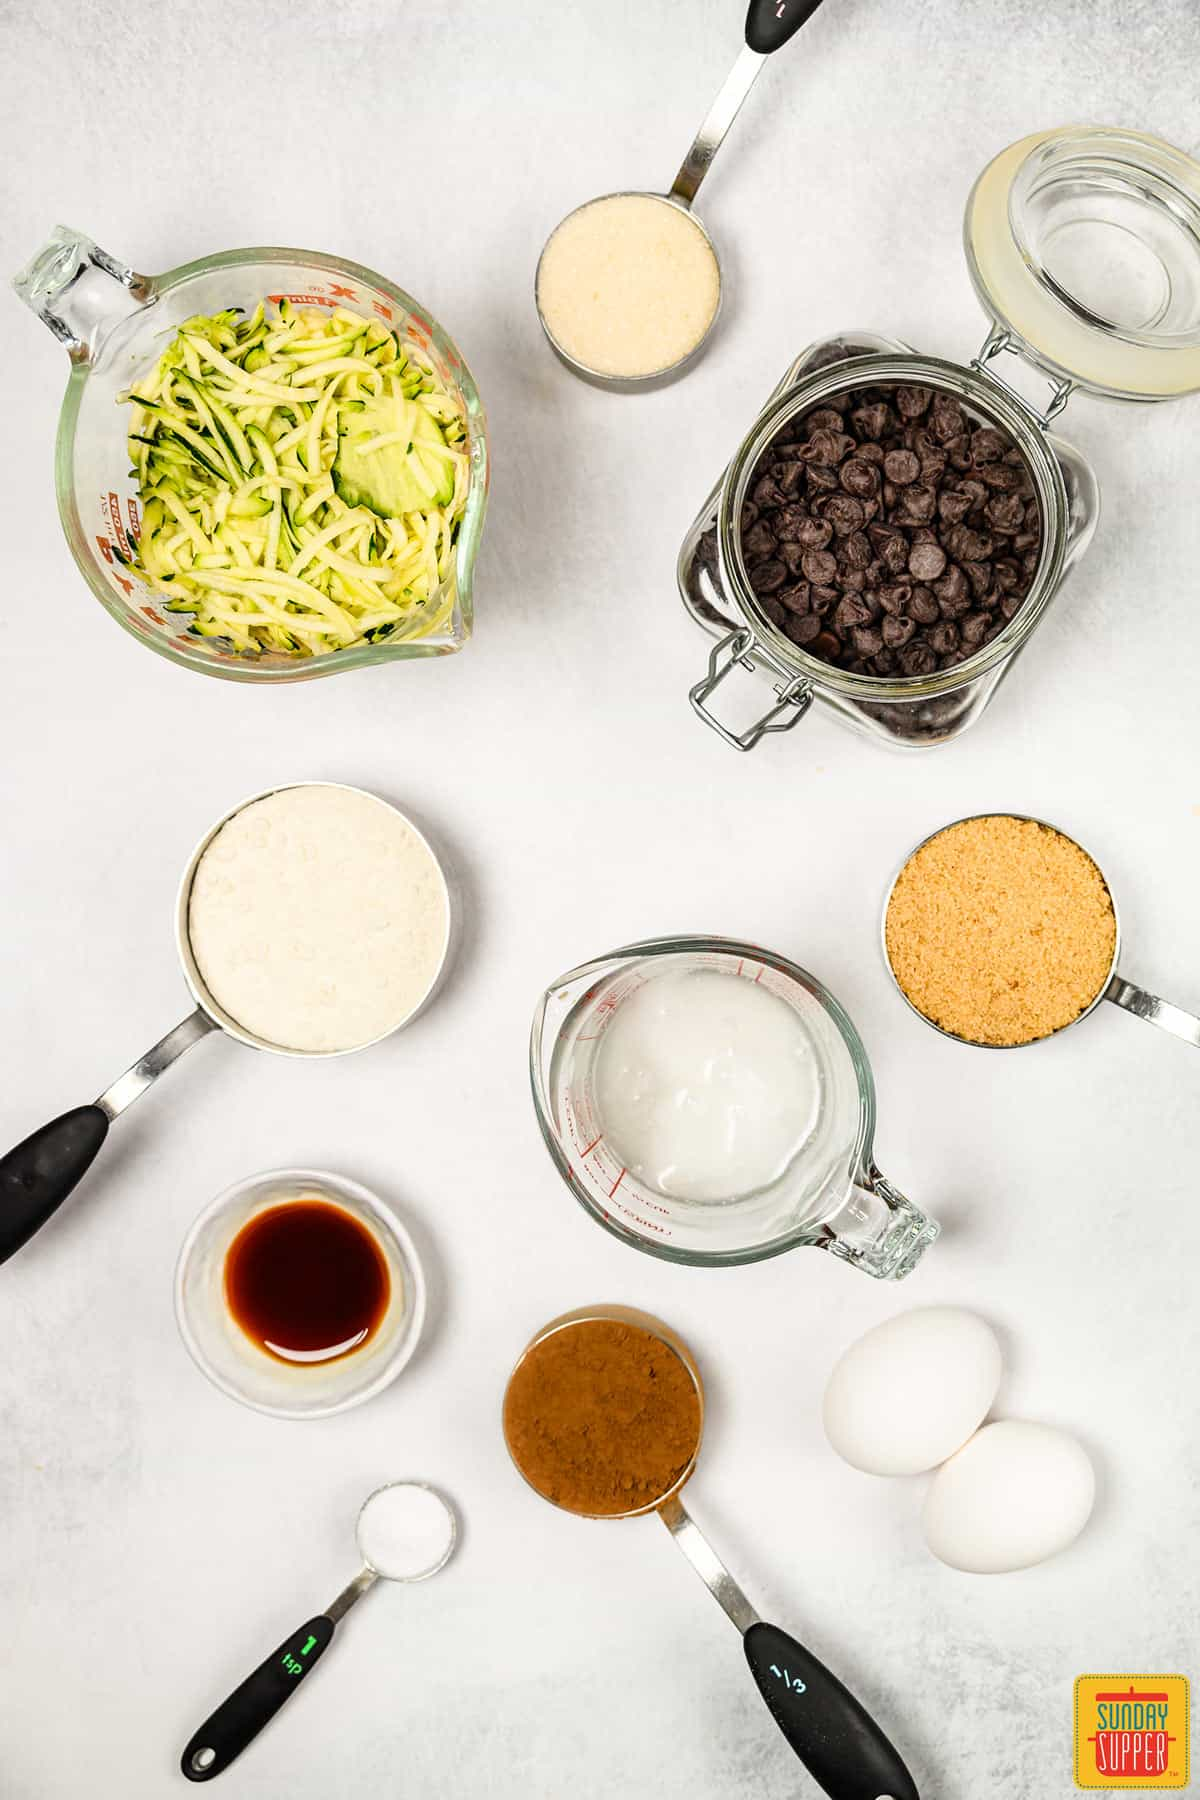 Ingredients needed to make zucchini brownies